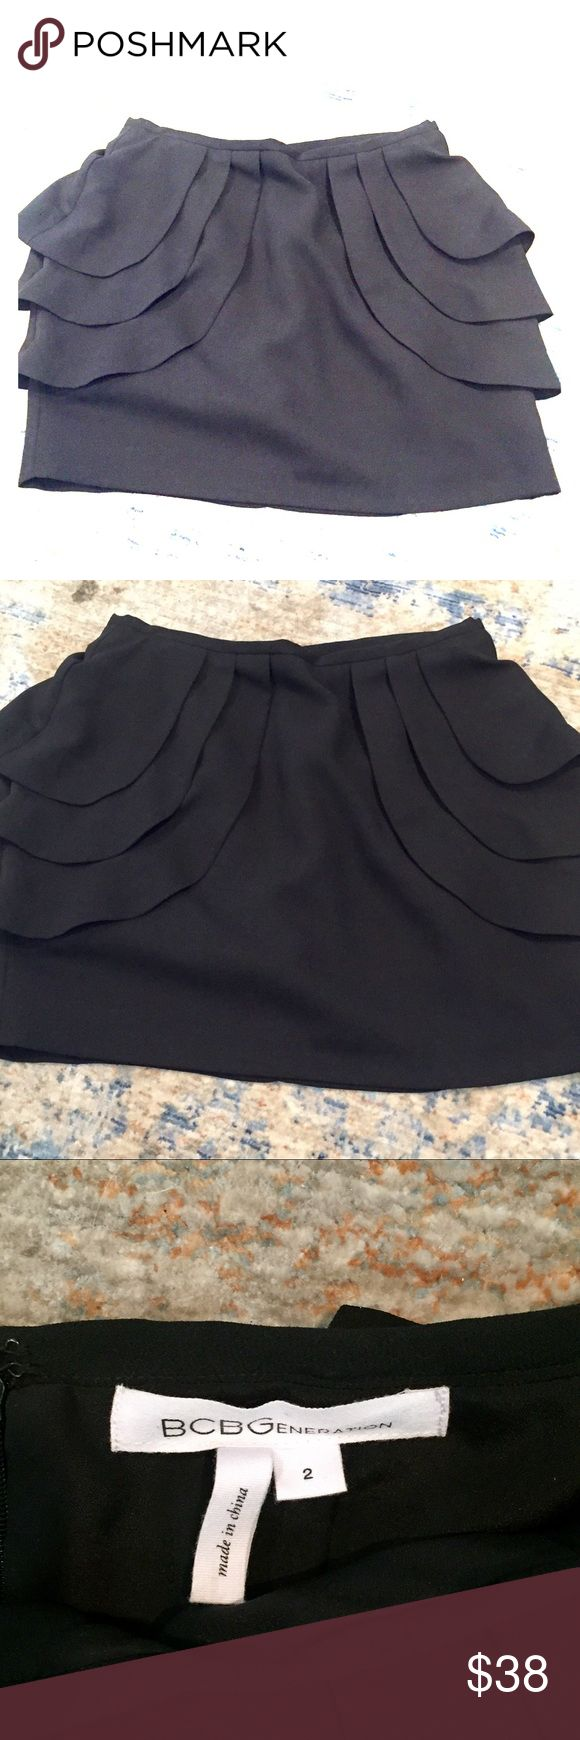 BCBGeneration Skirt BCBGeneration dress skirt with scalloped details on the side - great condition, no signs of wear. Don't know if I ever wore it and now doesn't fit anymore - has lining underneath & zipper on back BCBGeneration Skirts Mini